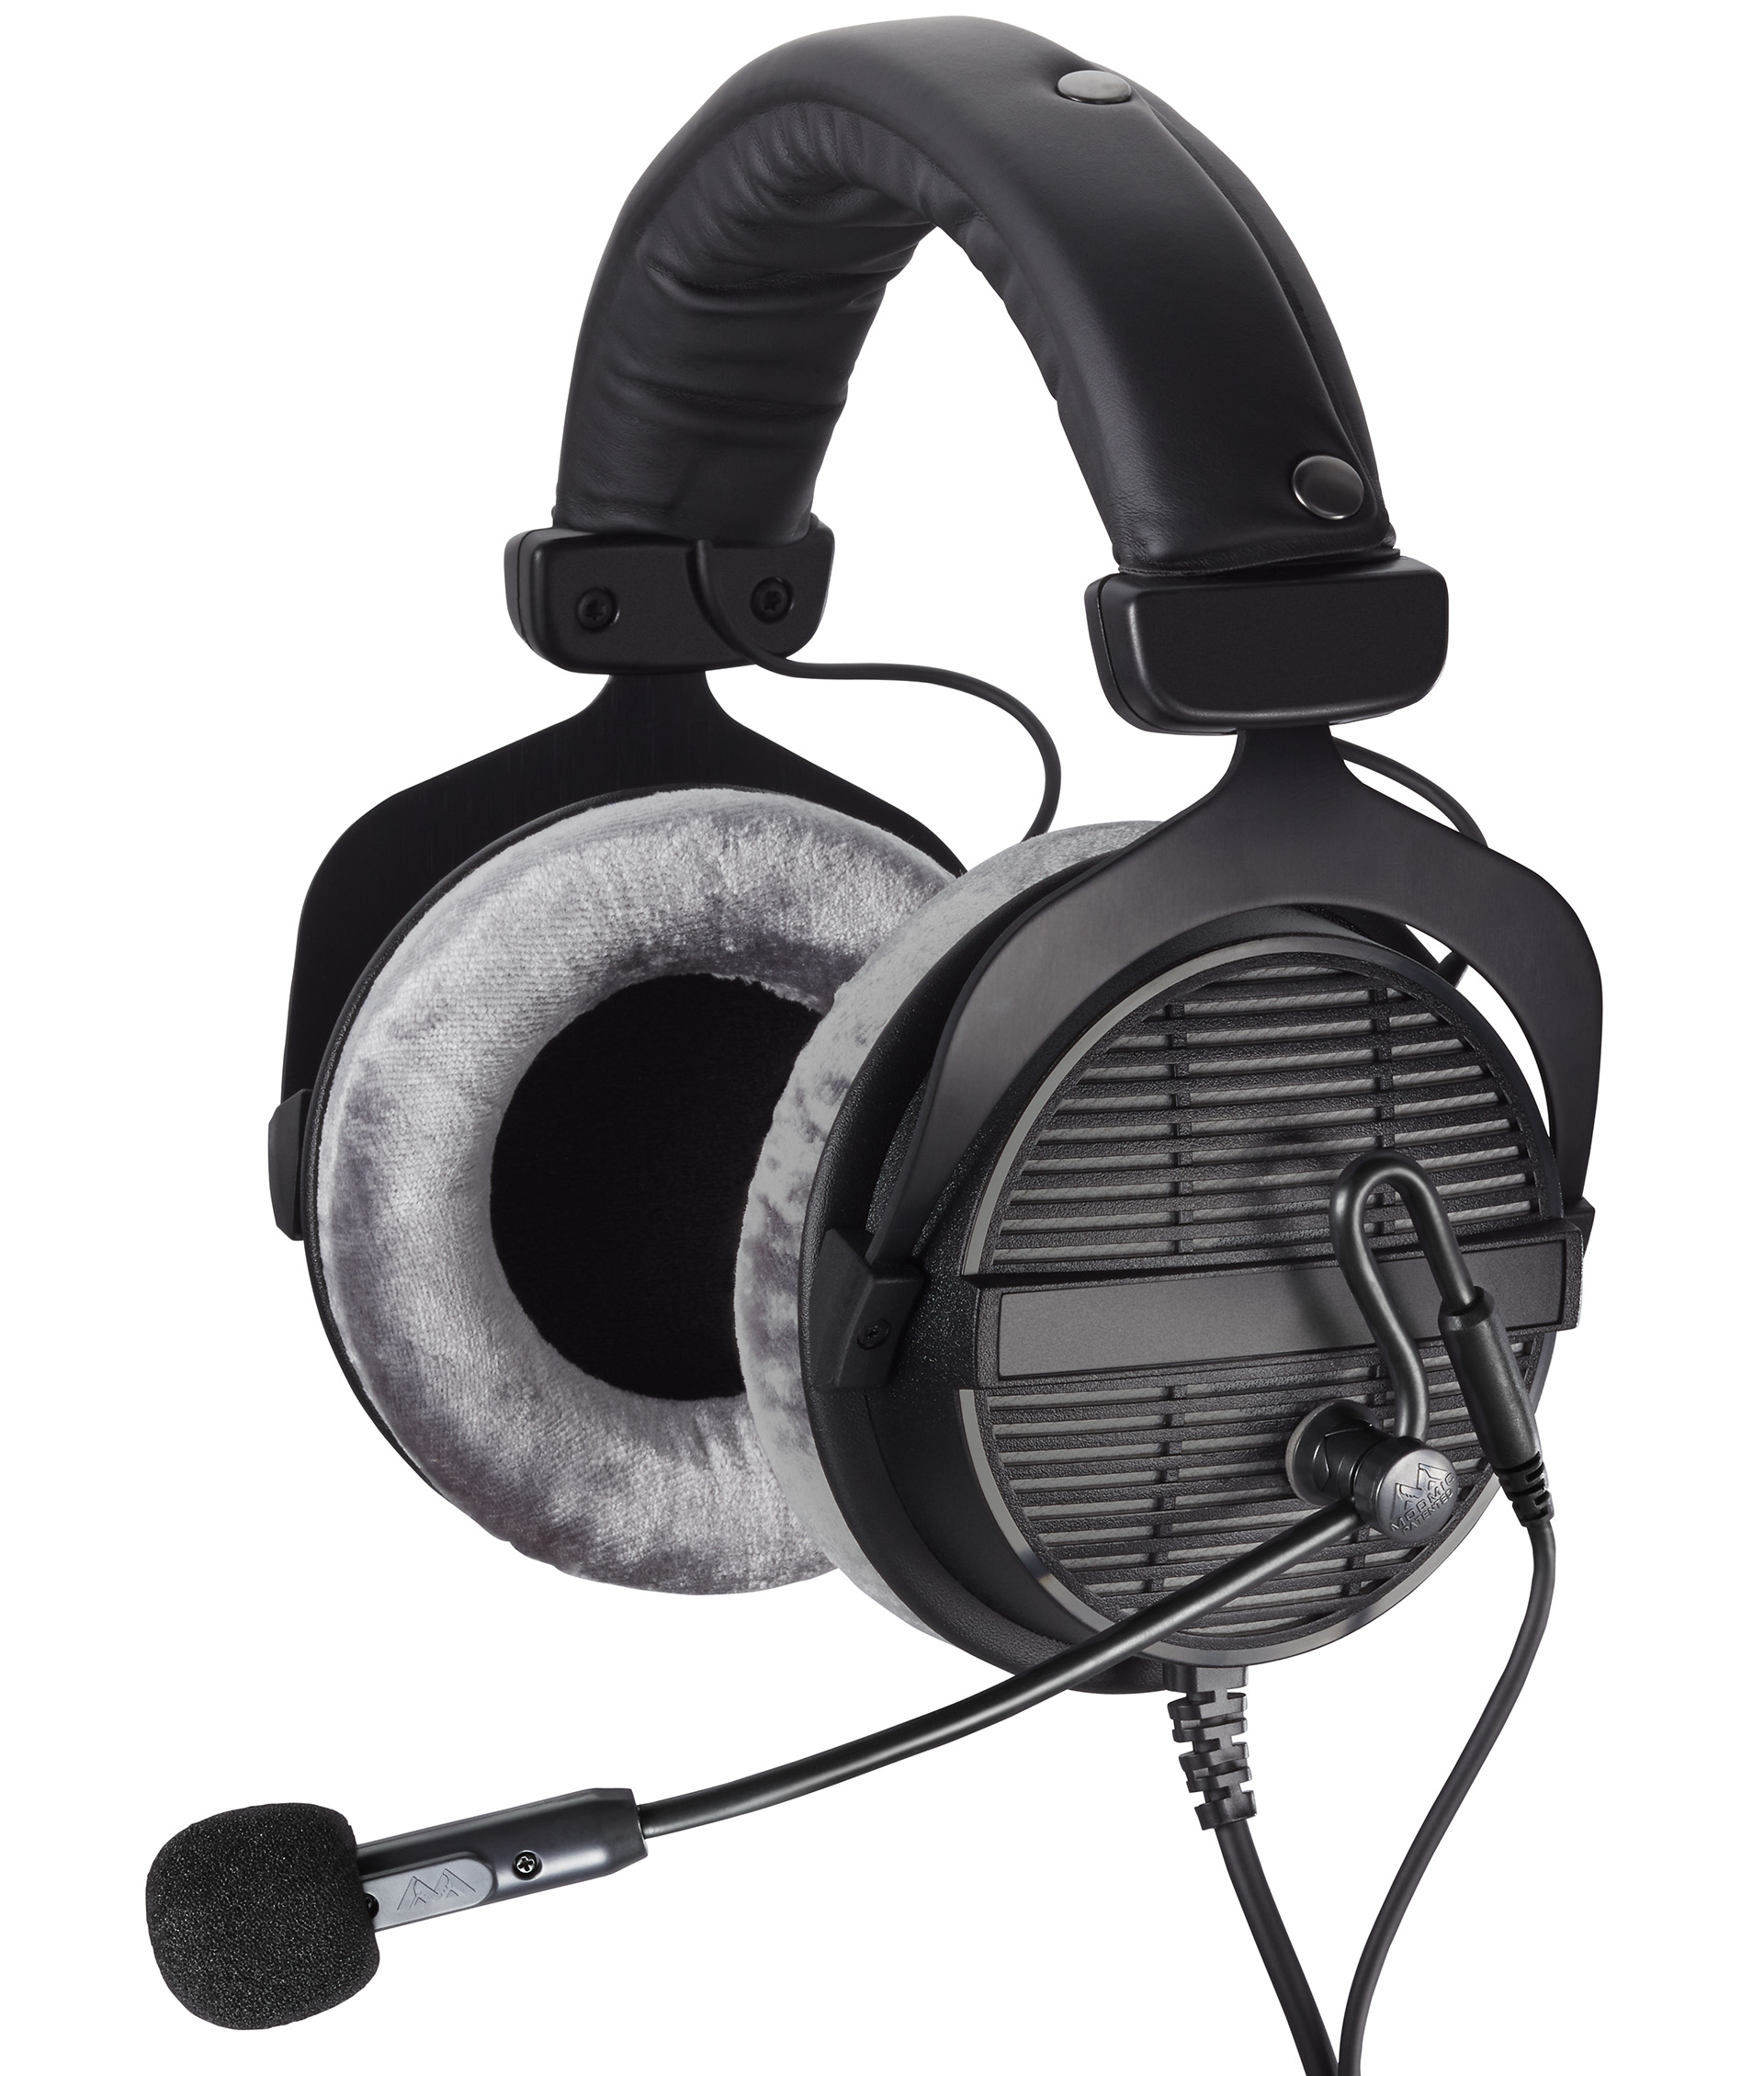 ModMic USB On Headphones